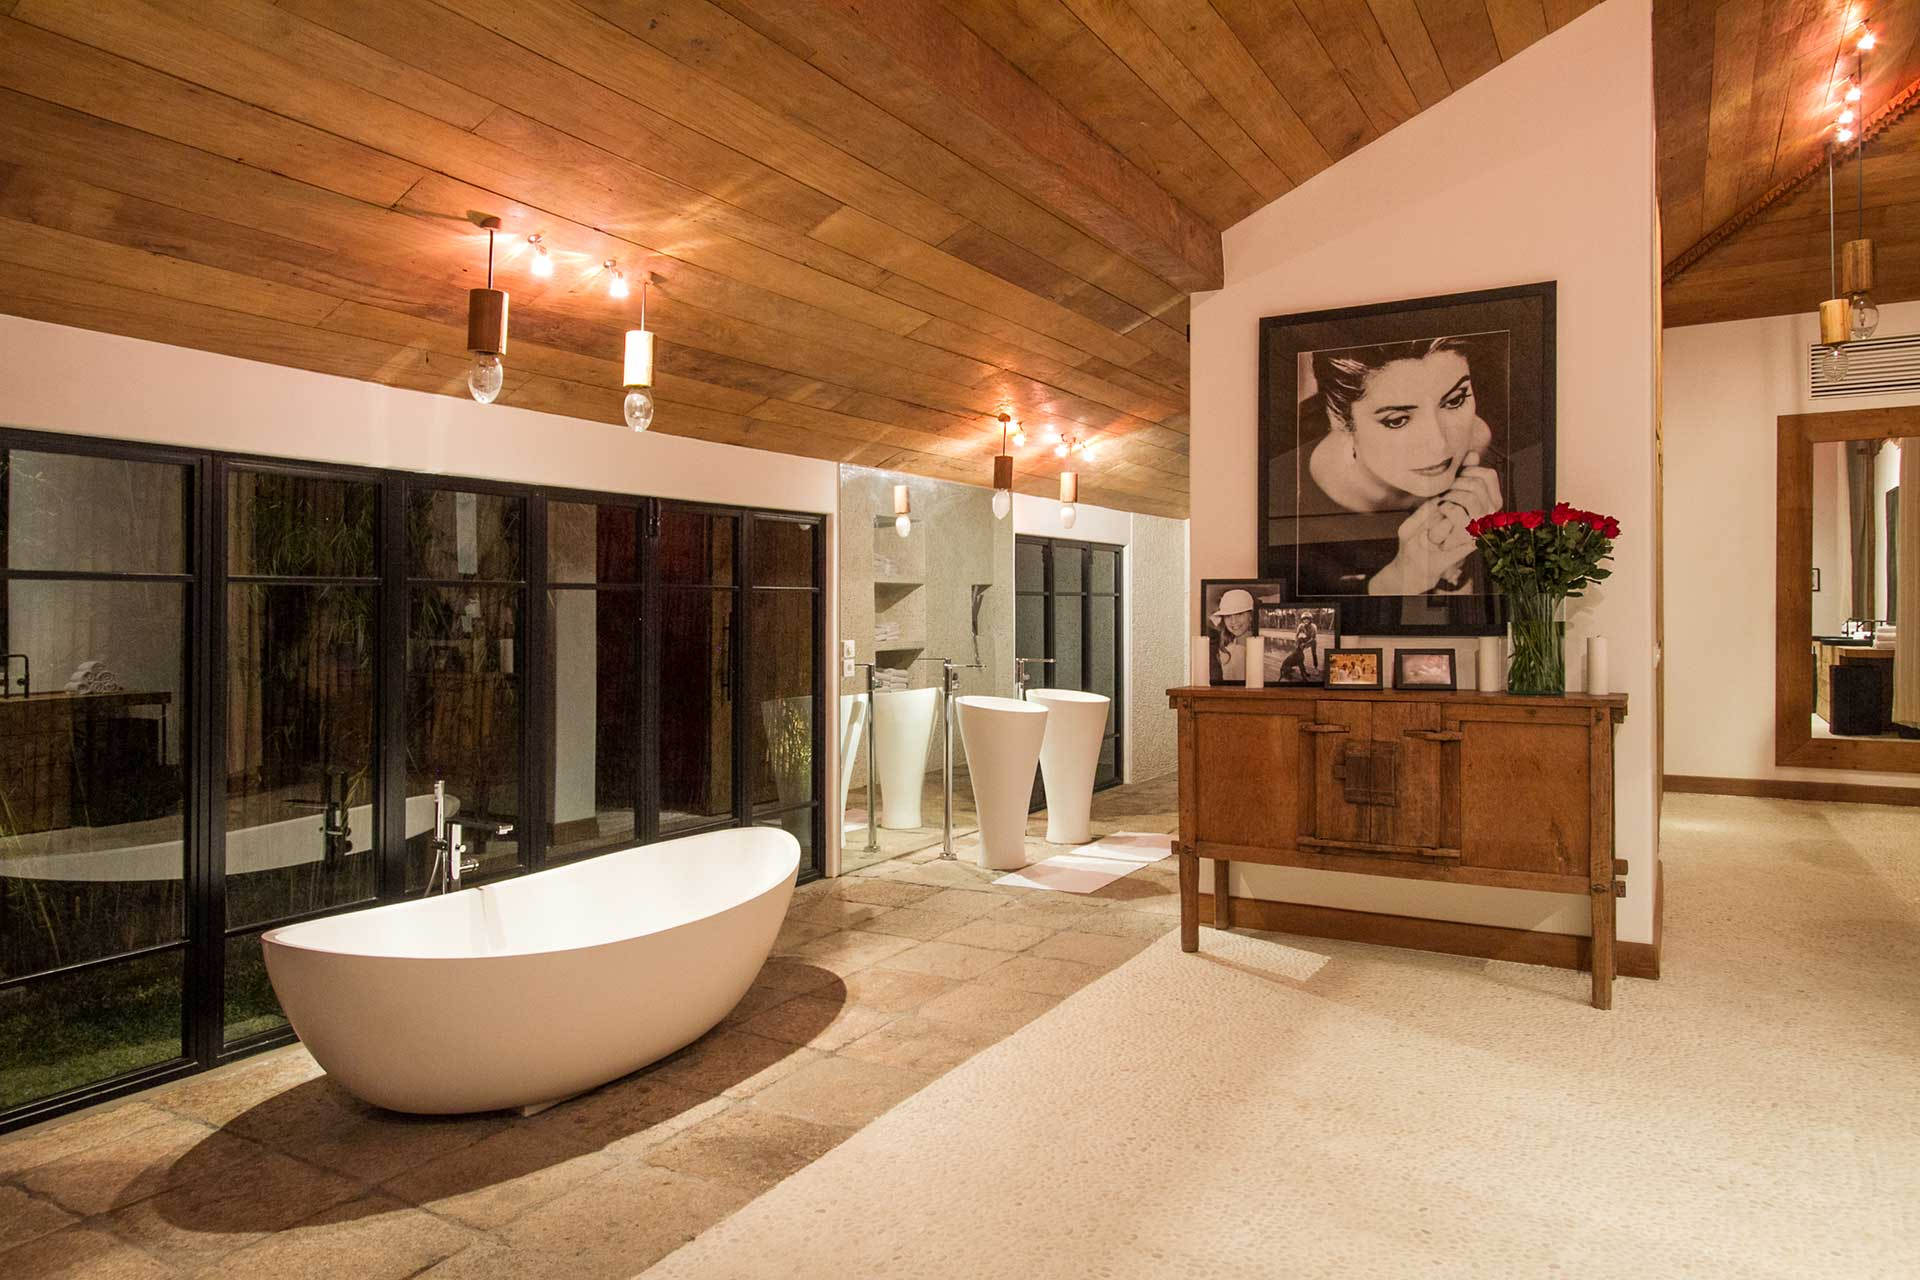 Grand Master Suite's bathtub